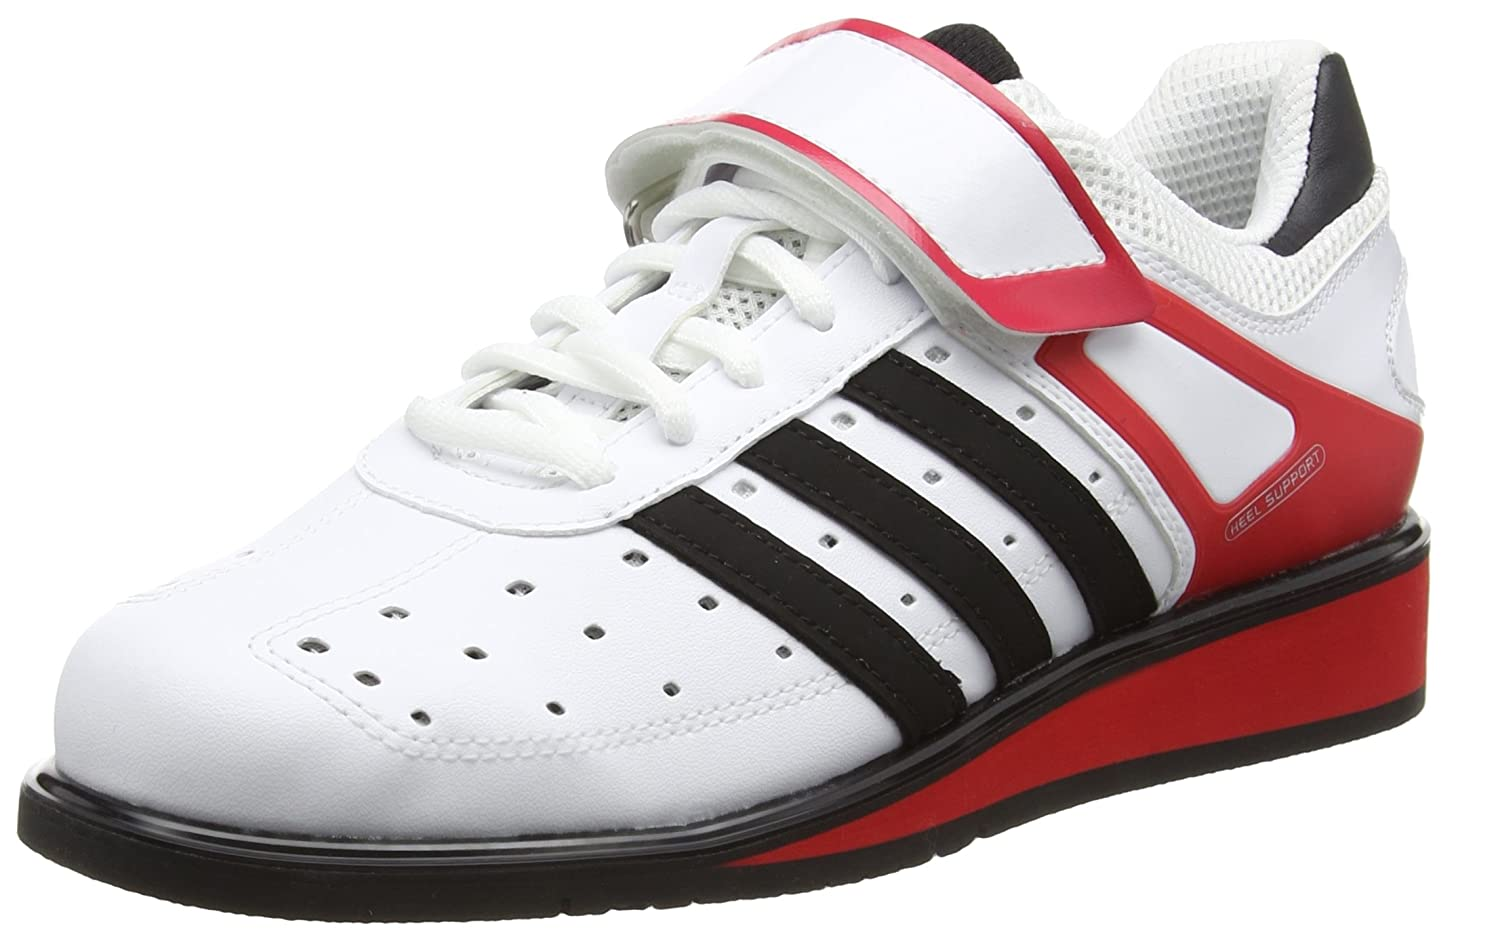 Adidas Herren Power Ii Perfect Ii Power Hallenschuhe 14f486